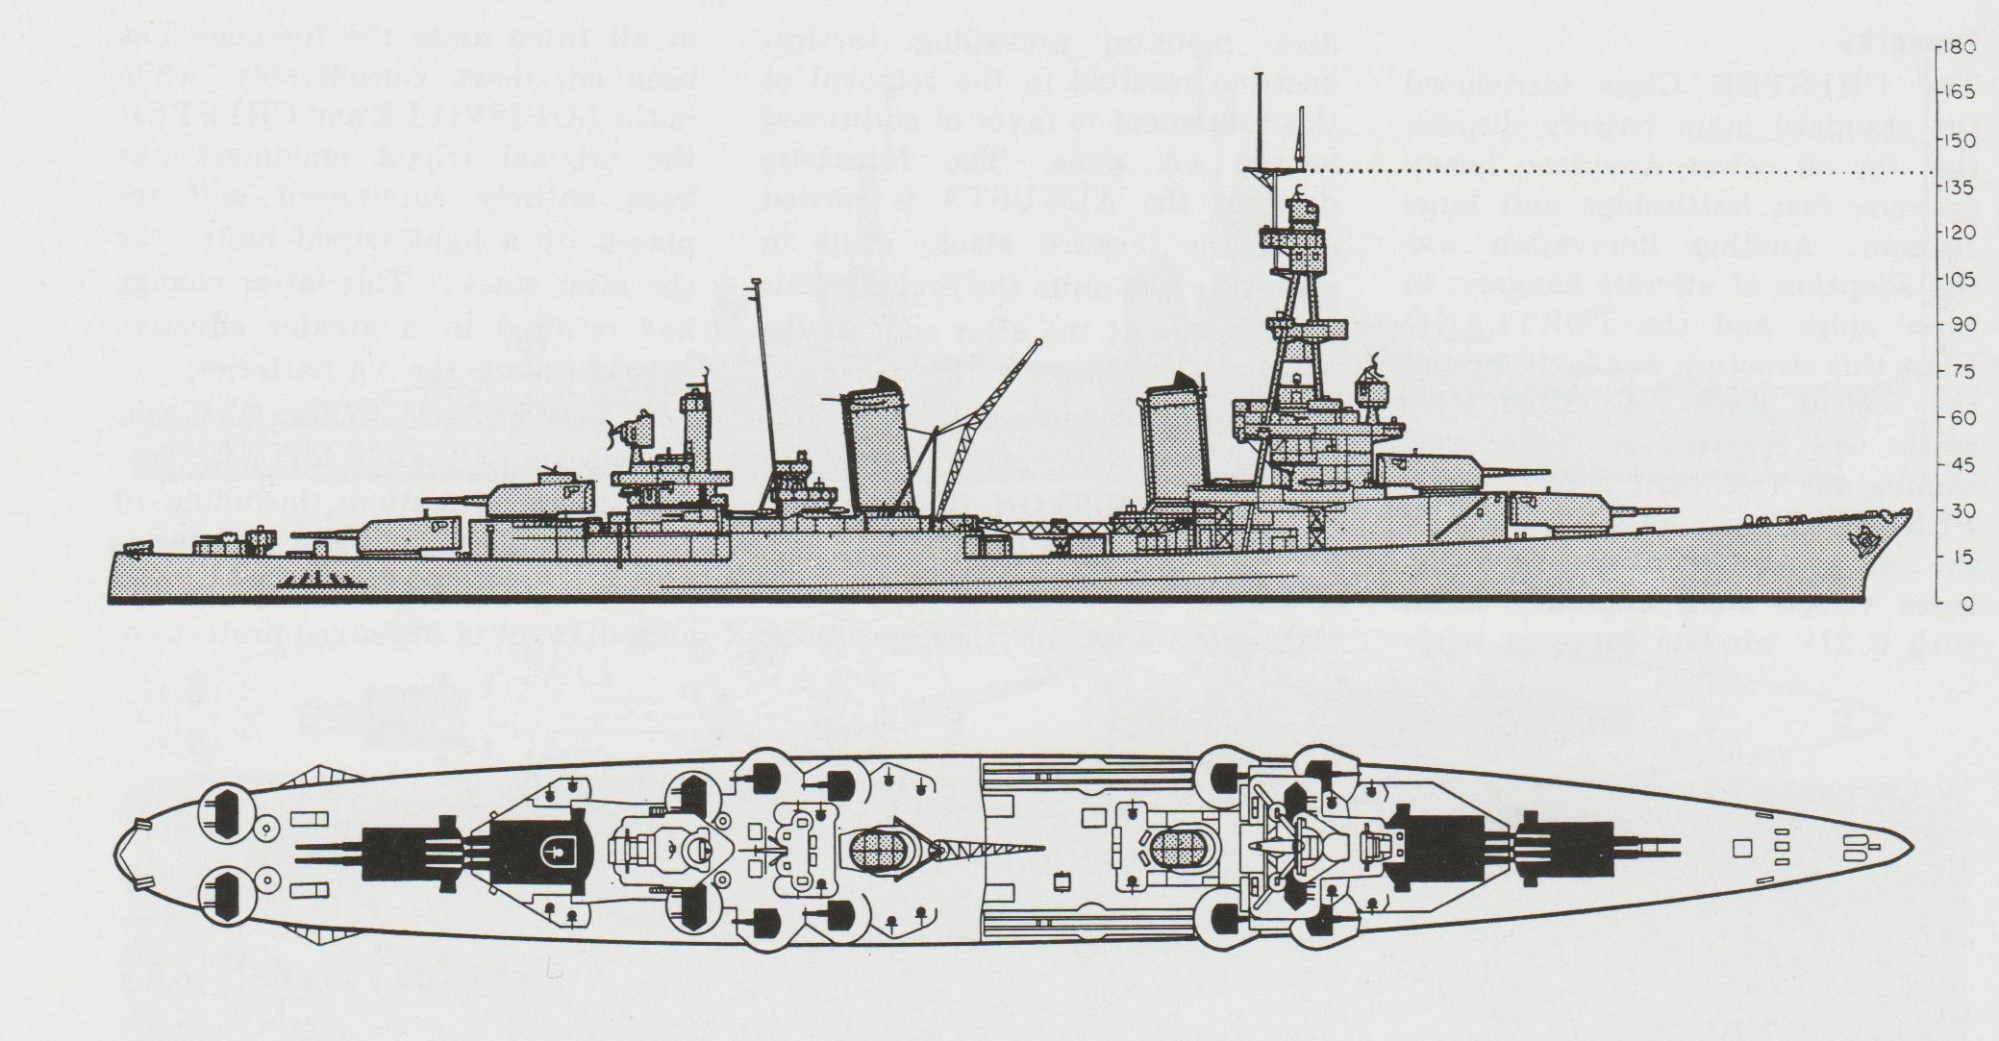 hight resolution of schematic diagram of pensacola class heavy cruiser